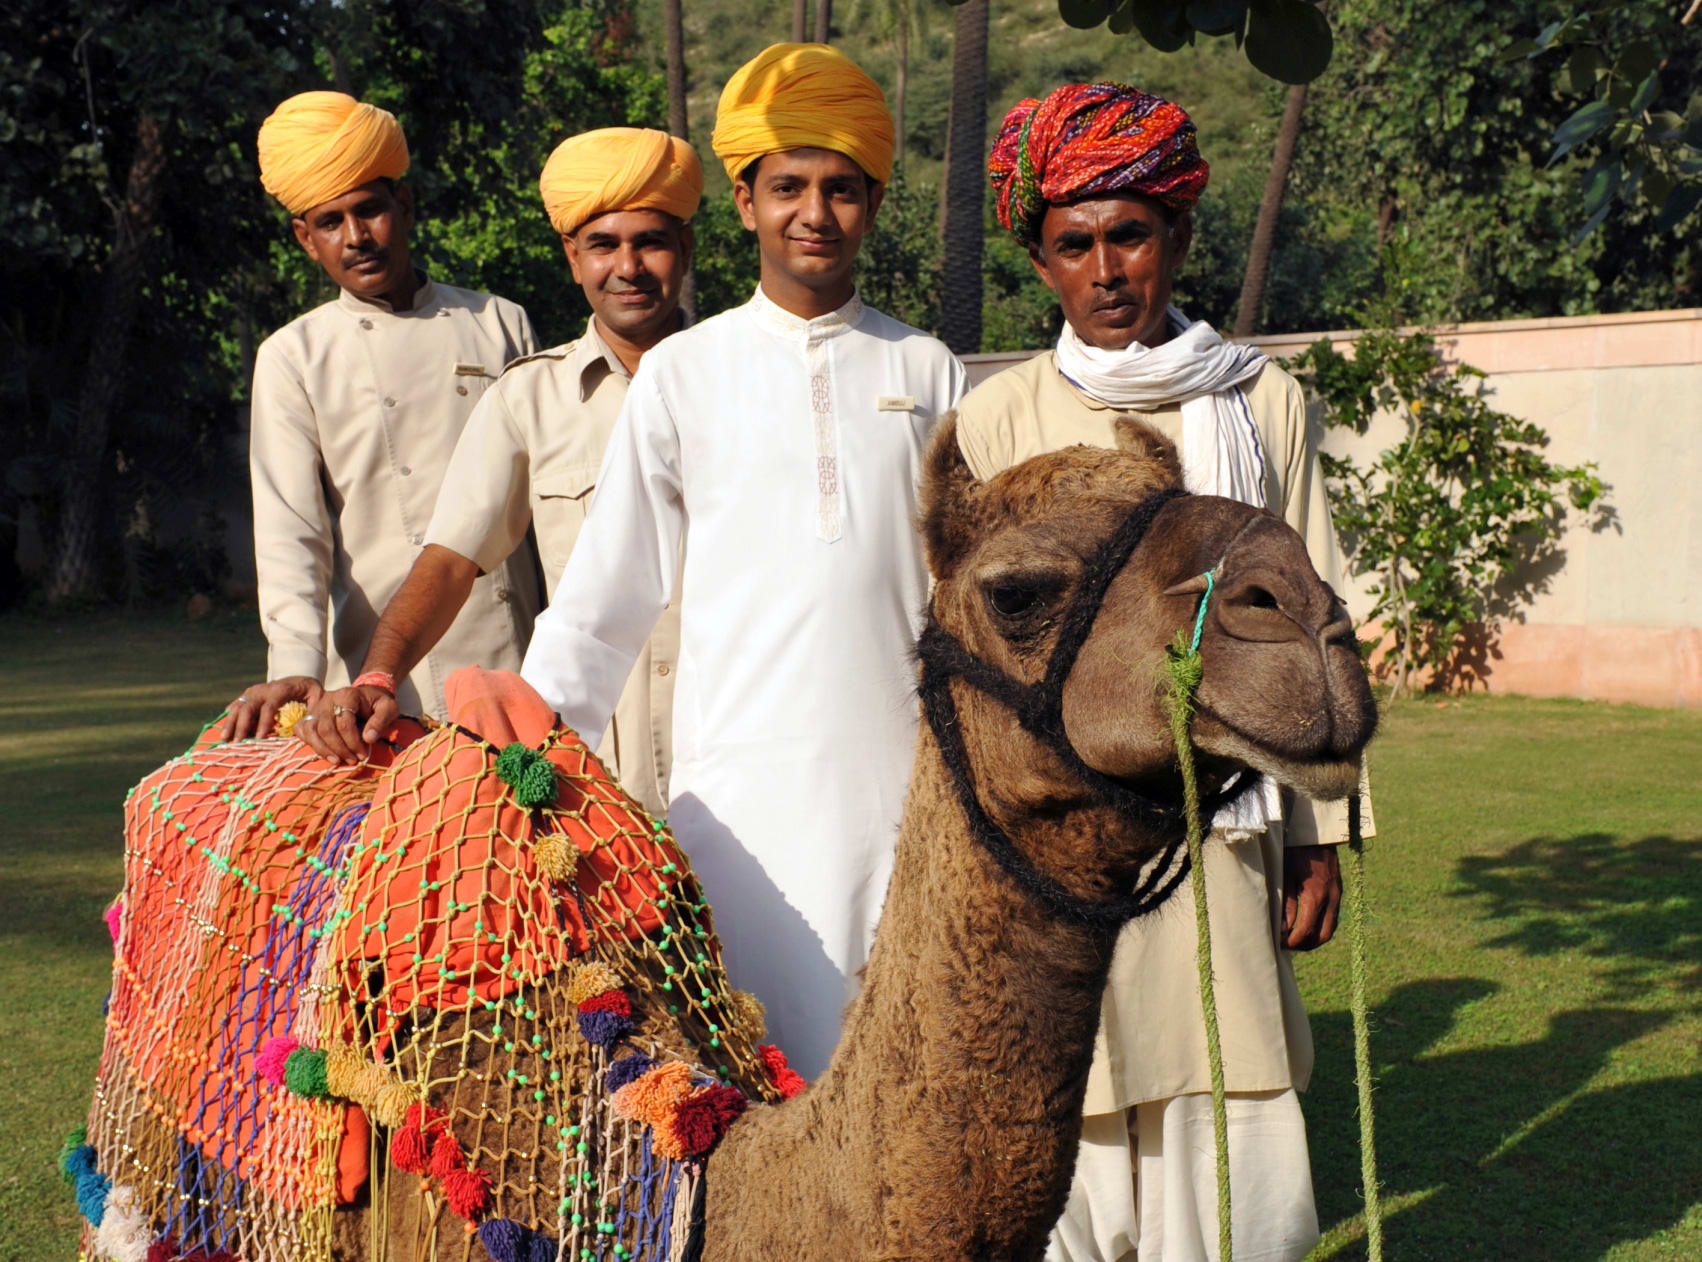 four men with turbans, sitting camel